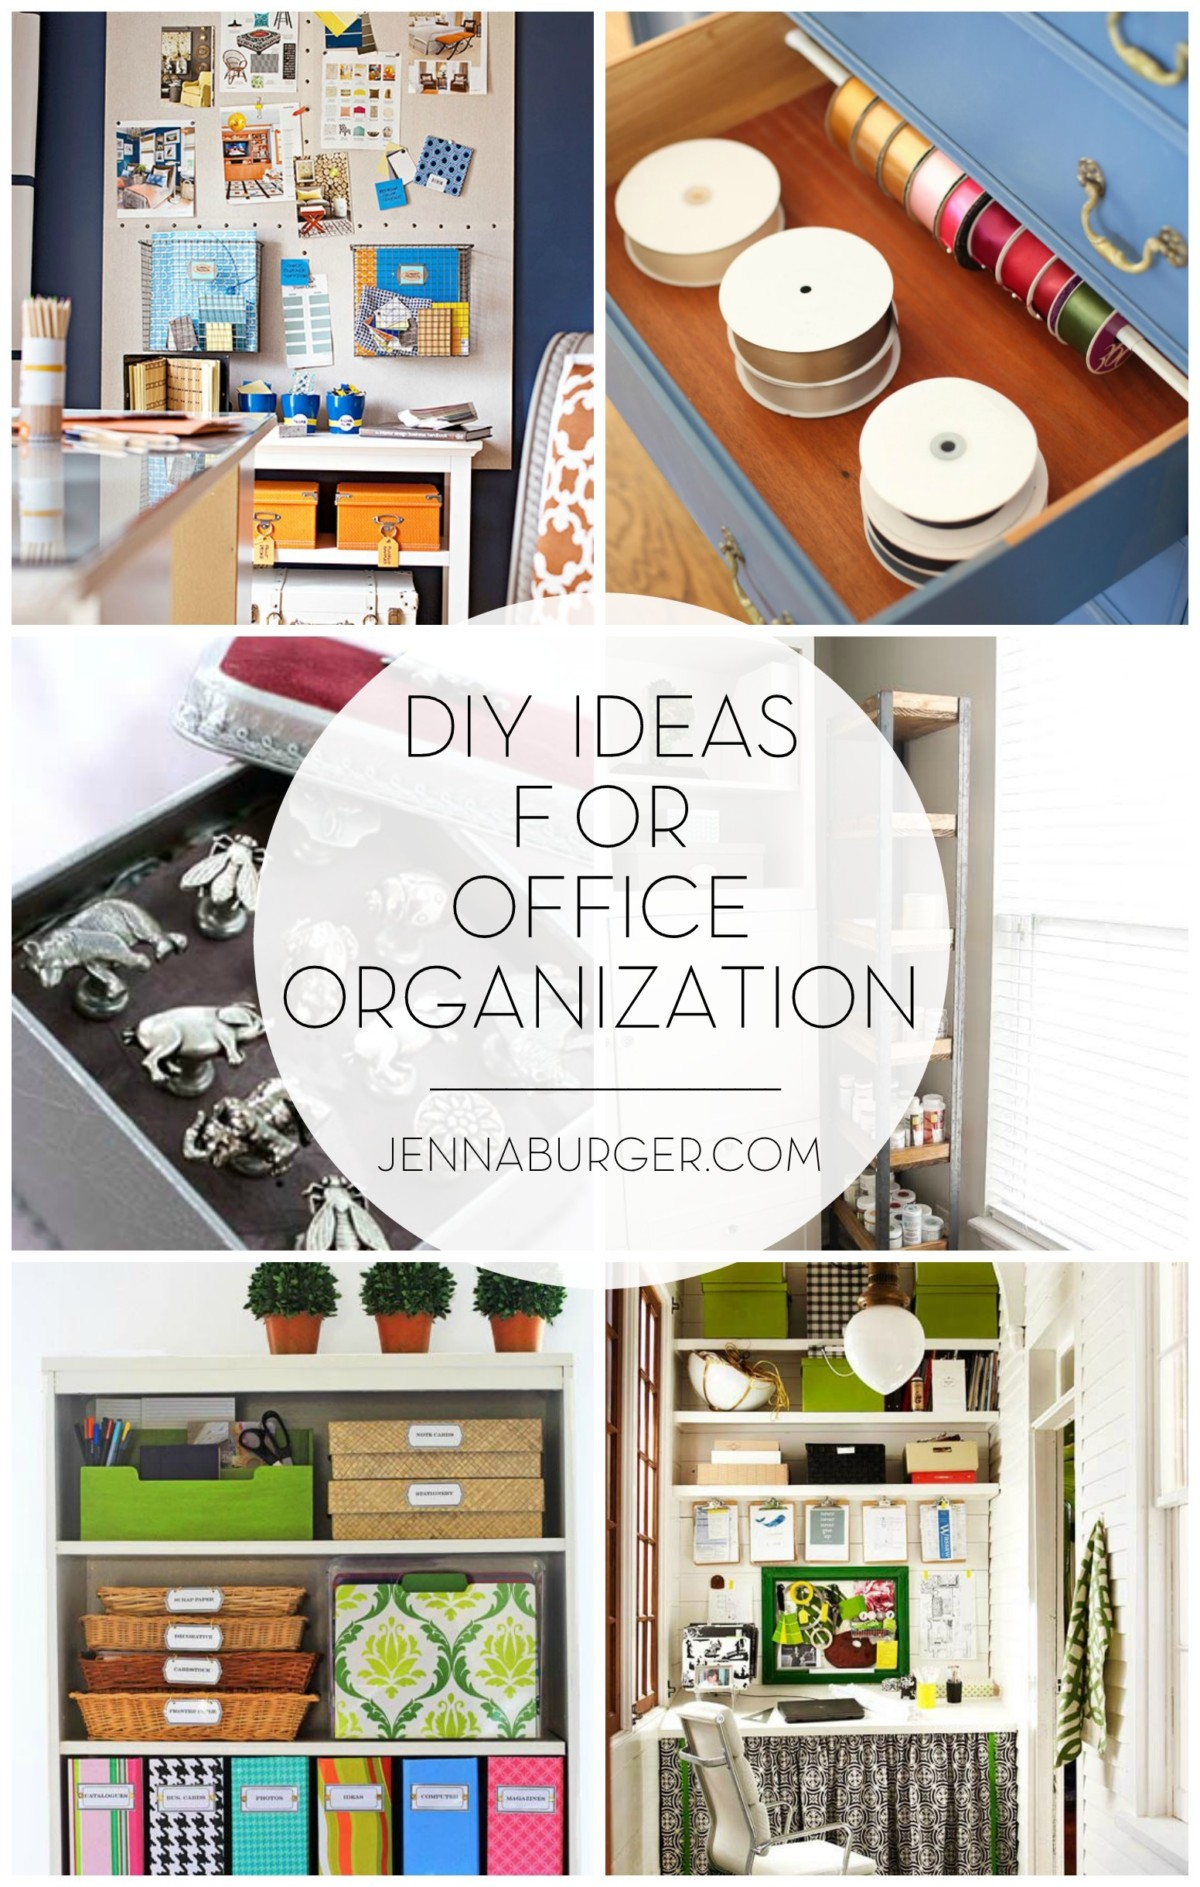 Diy office organization jenna burger do it yourself creations for get the office organized not to solutioingenieria Image collections